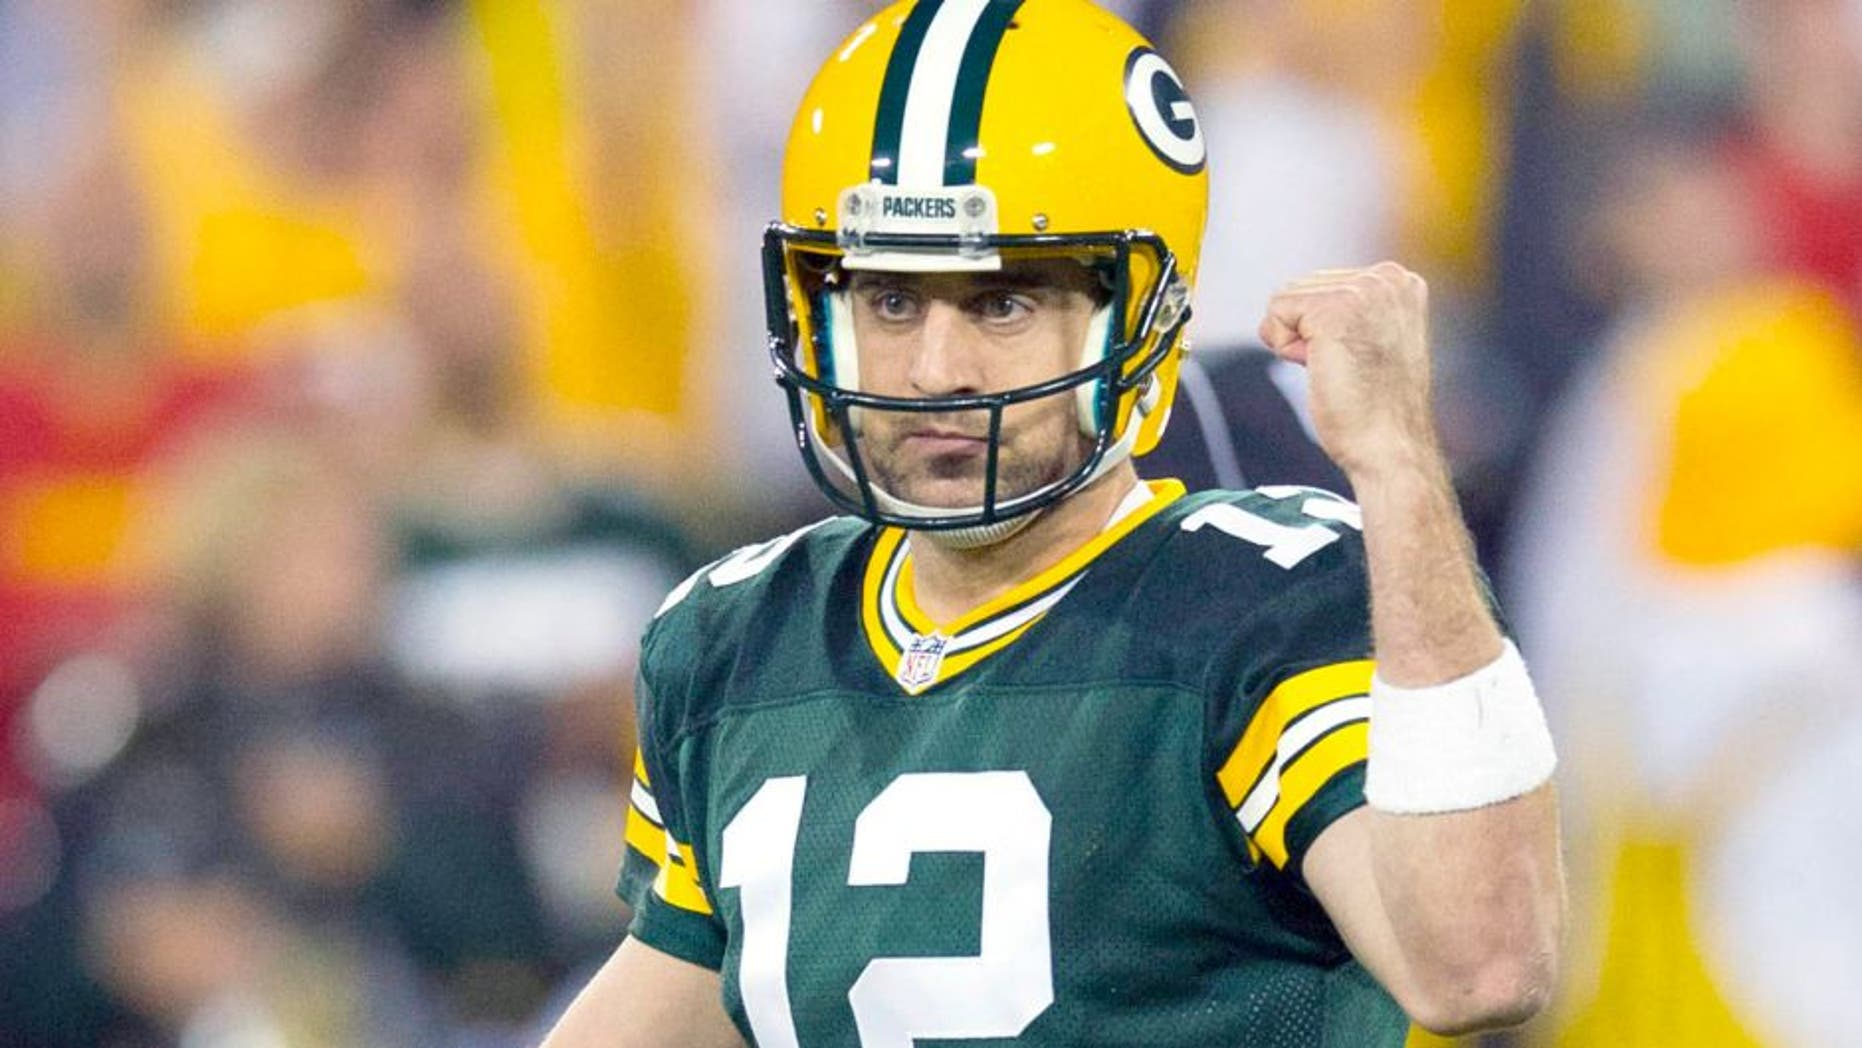 Sep 28, 2015; Green Bay, WI, USA; Green Bay Packers quarterback Aaron Rodgers (12) celebrates a touchdown pass during the first quarter against the Kansas City Chiefs at Lambeau Field. Mandatory Credit: Jeff Hanisch-USA TODAY Sports